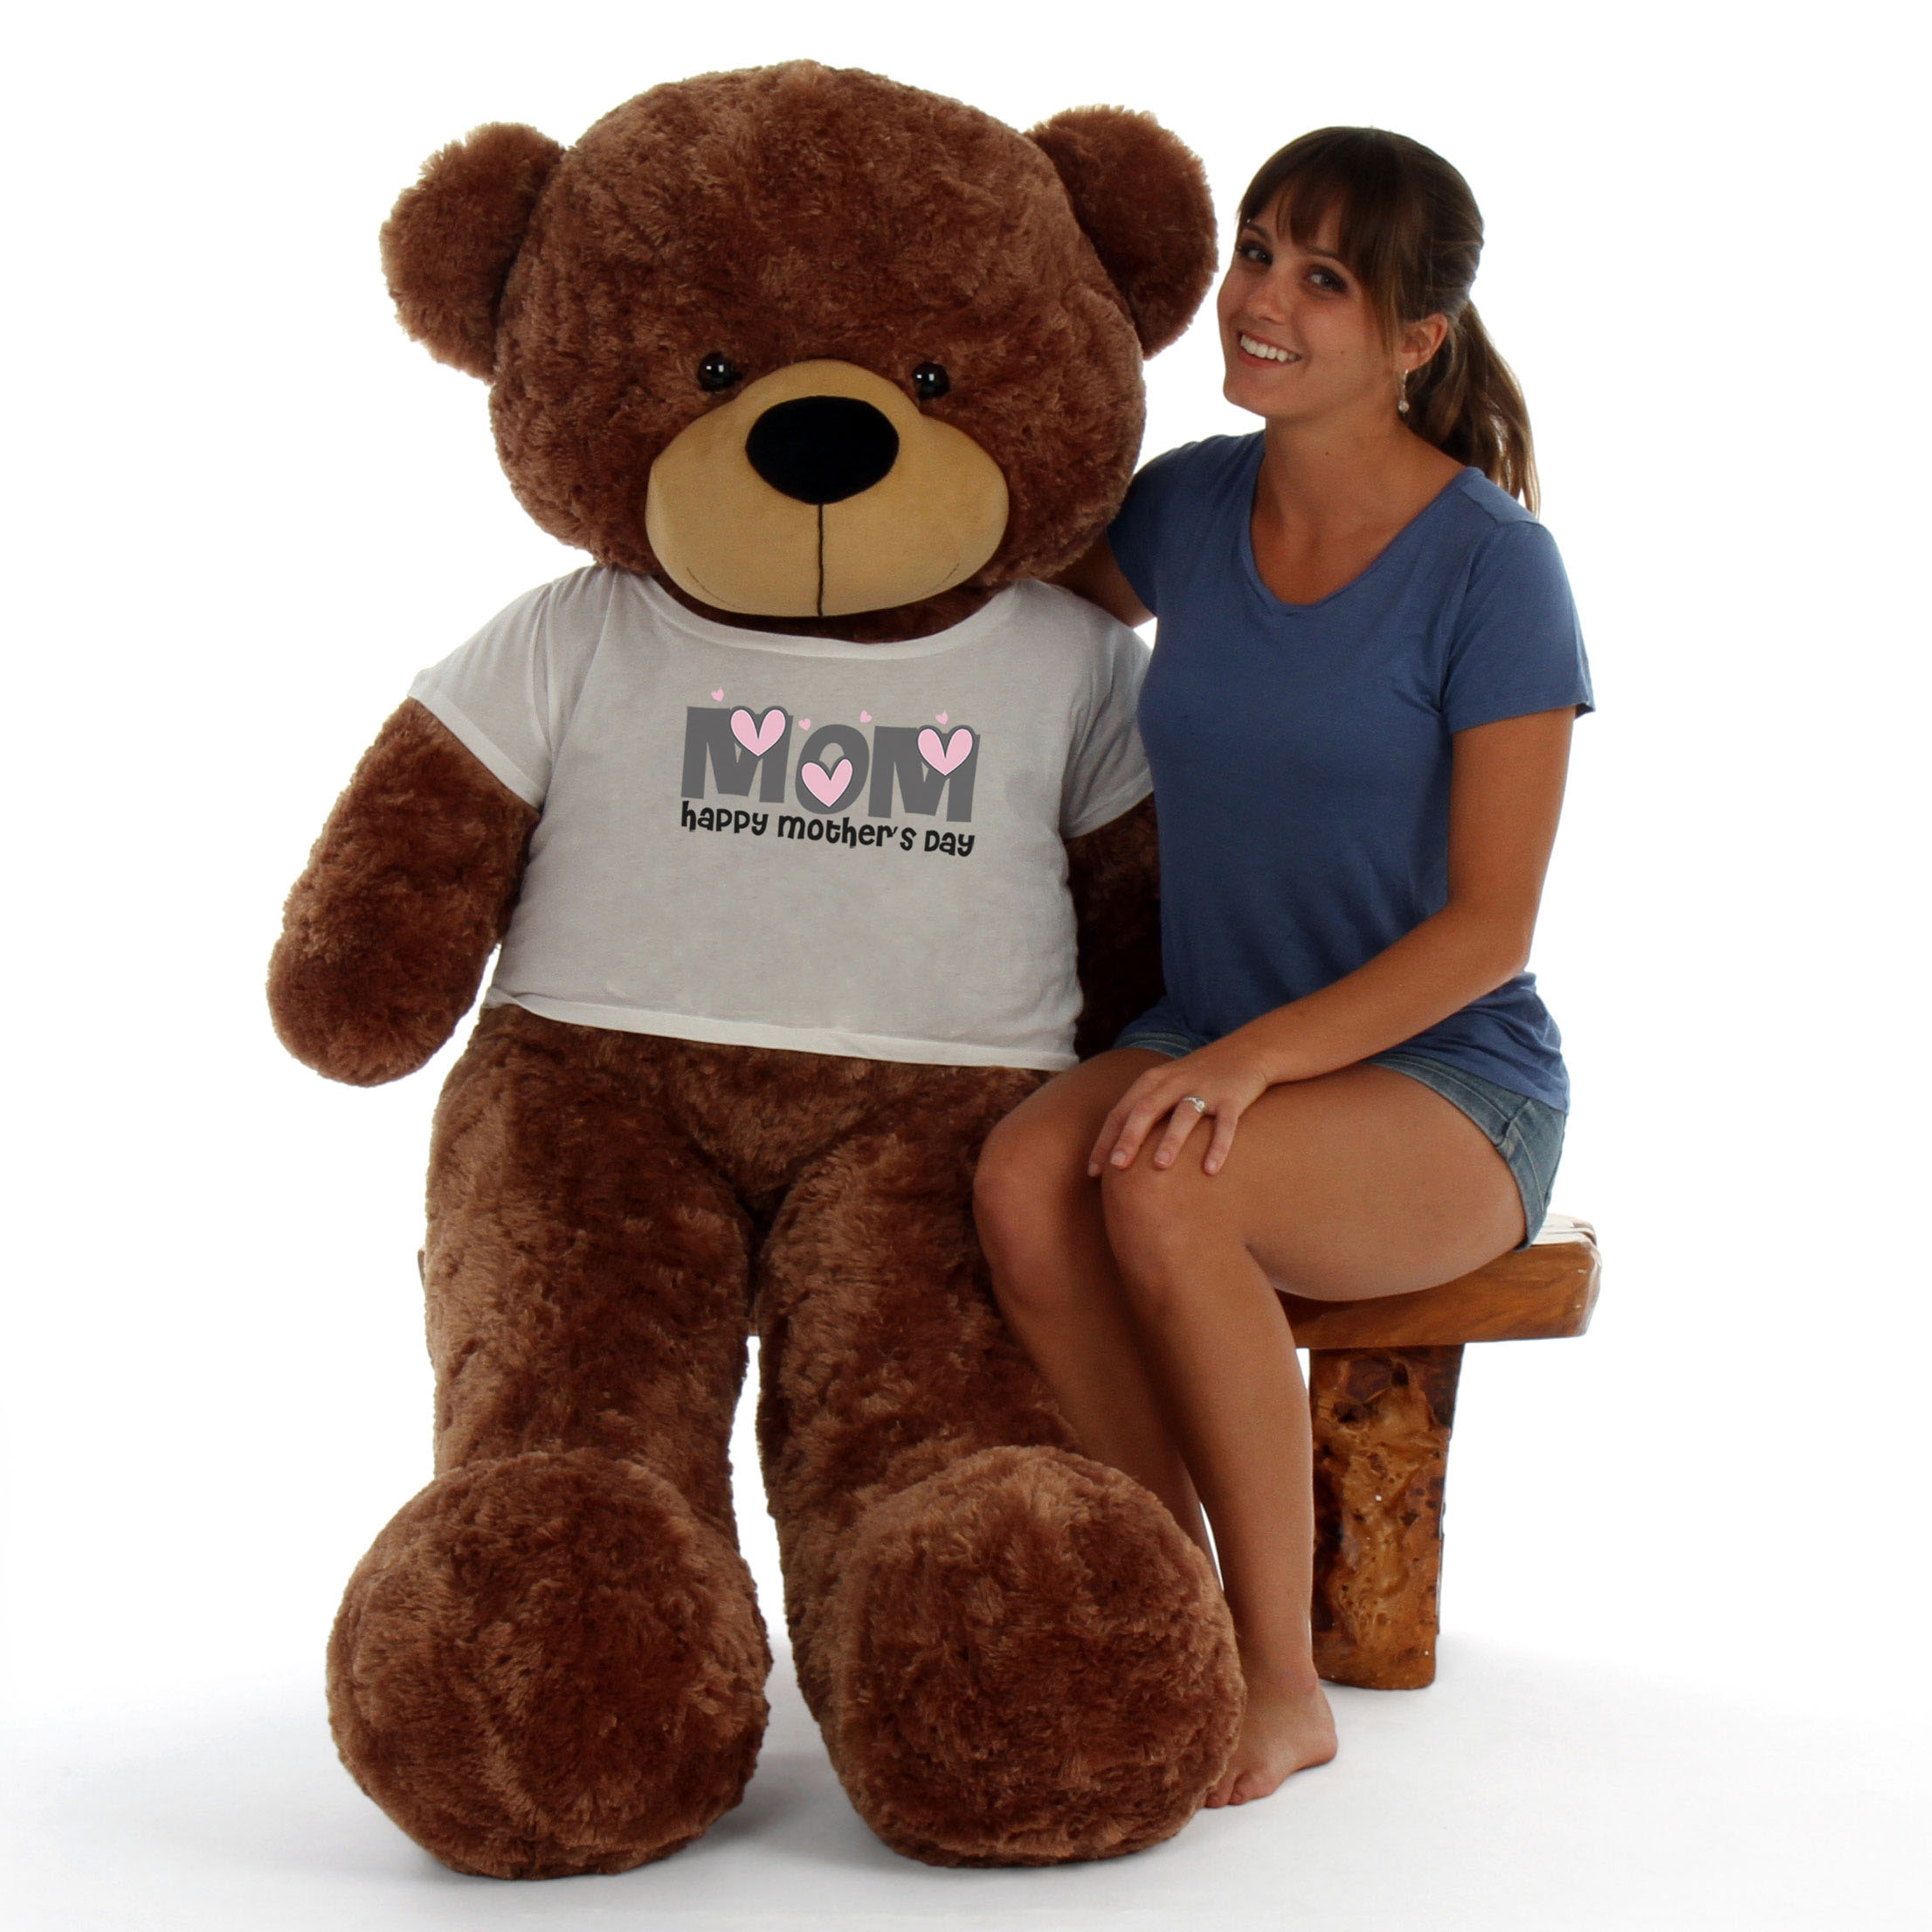 5ft-sunny-cuddles-by-giant-teddy-for-mothers-day.jpg